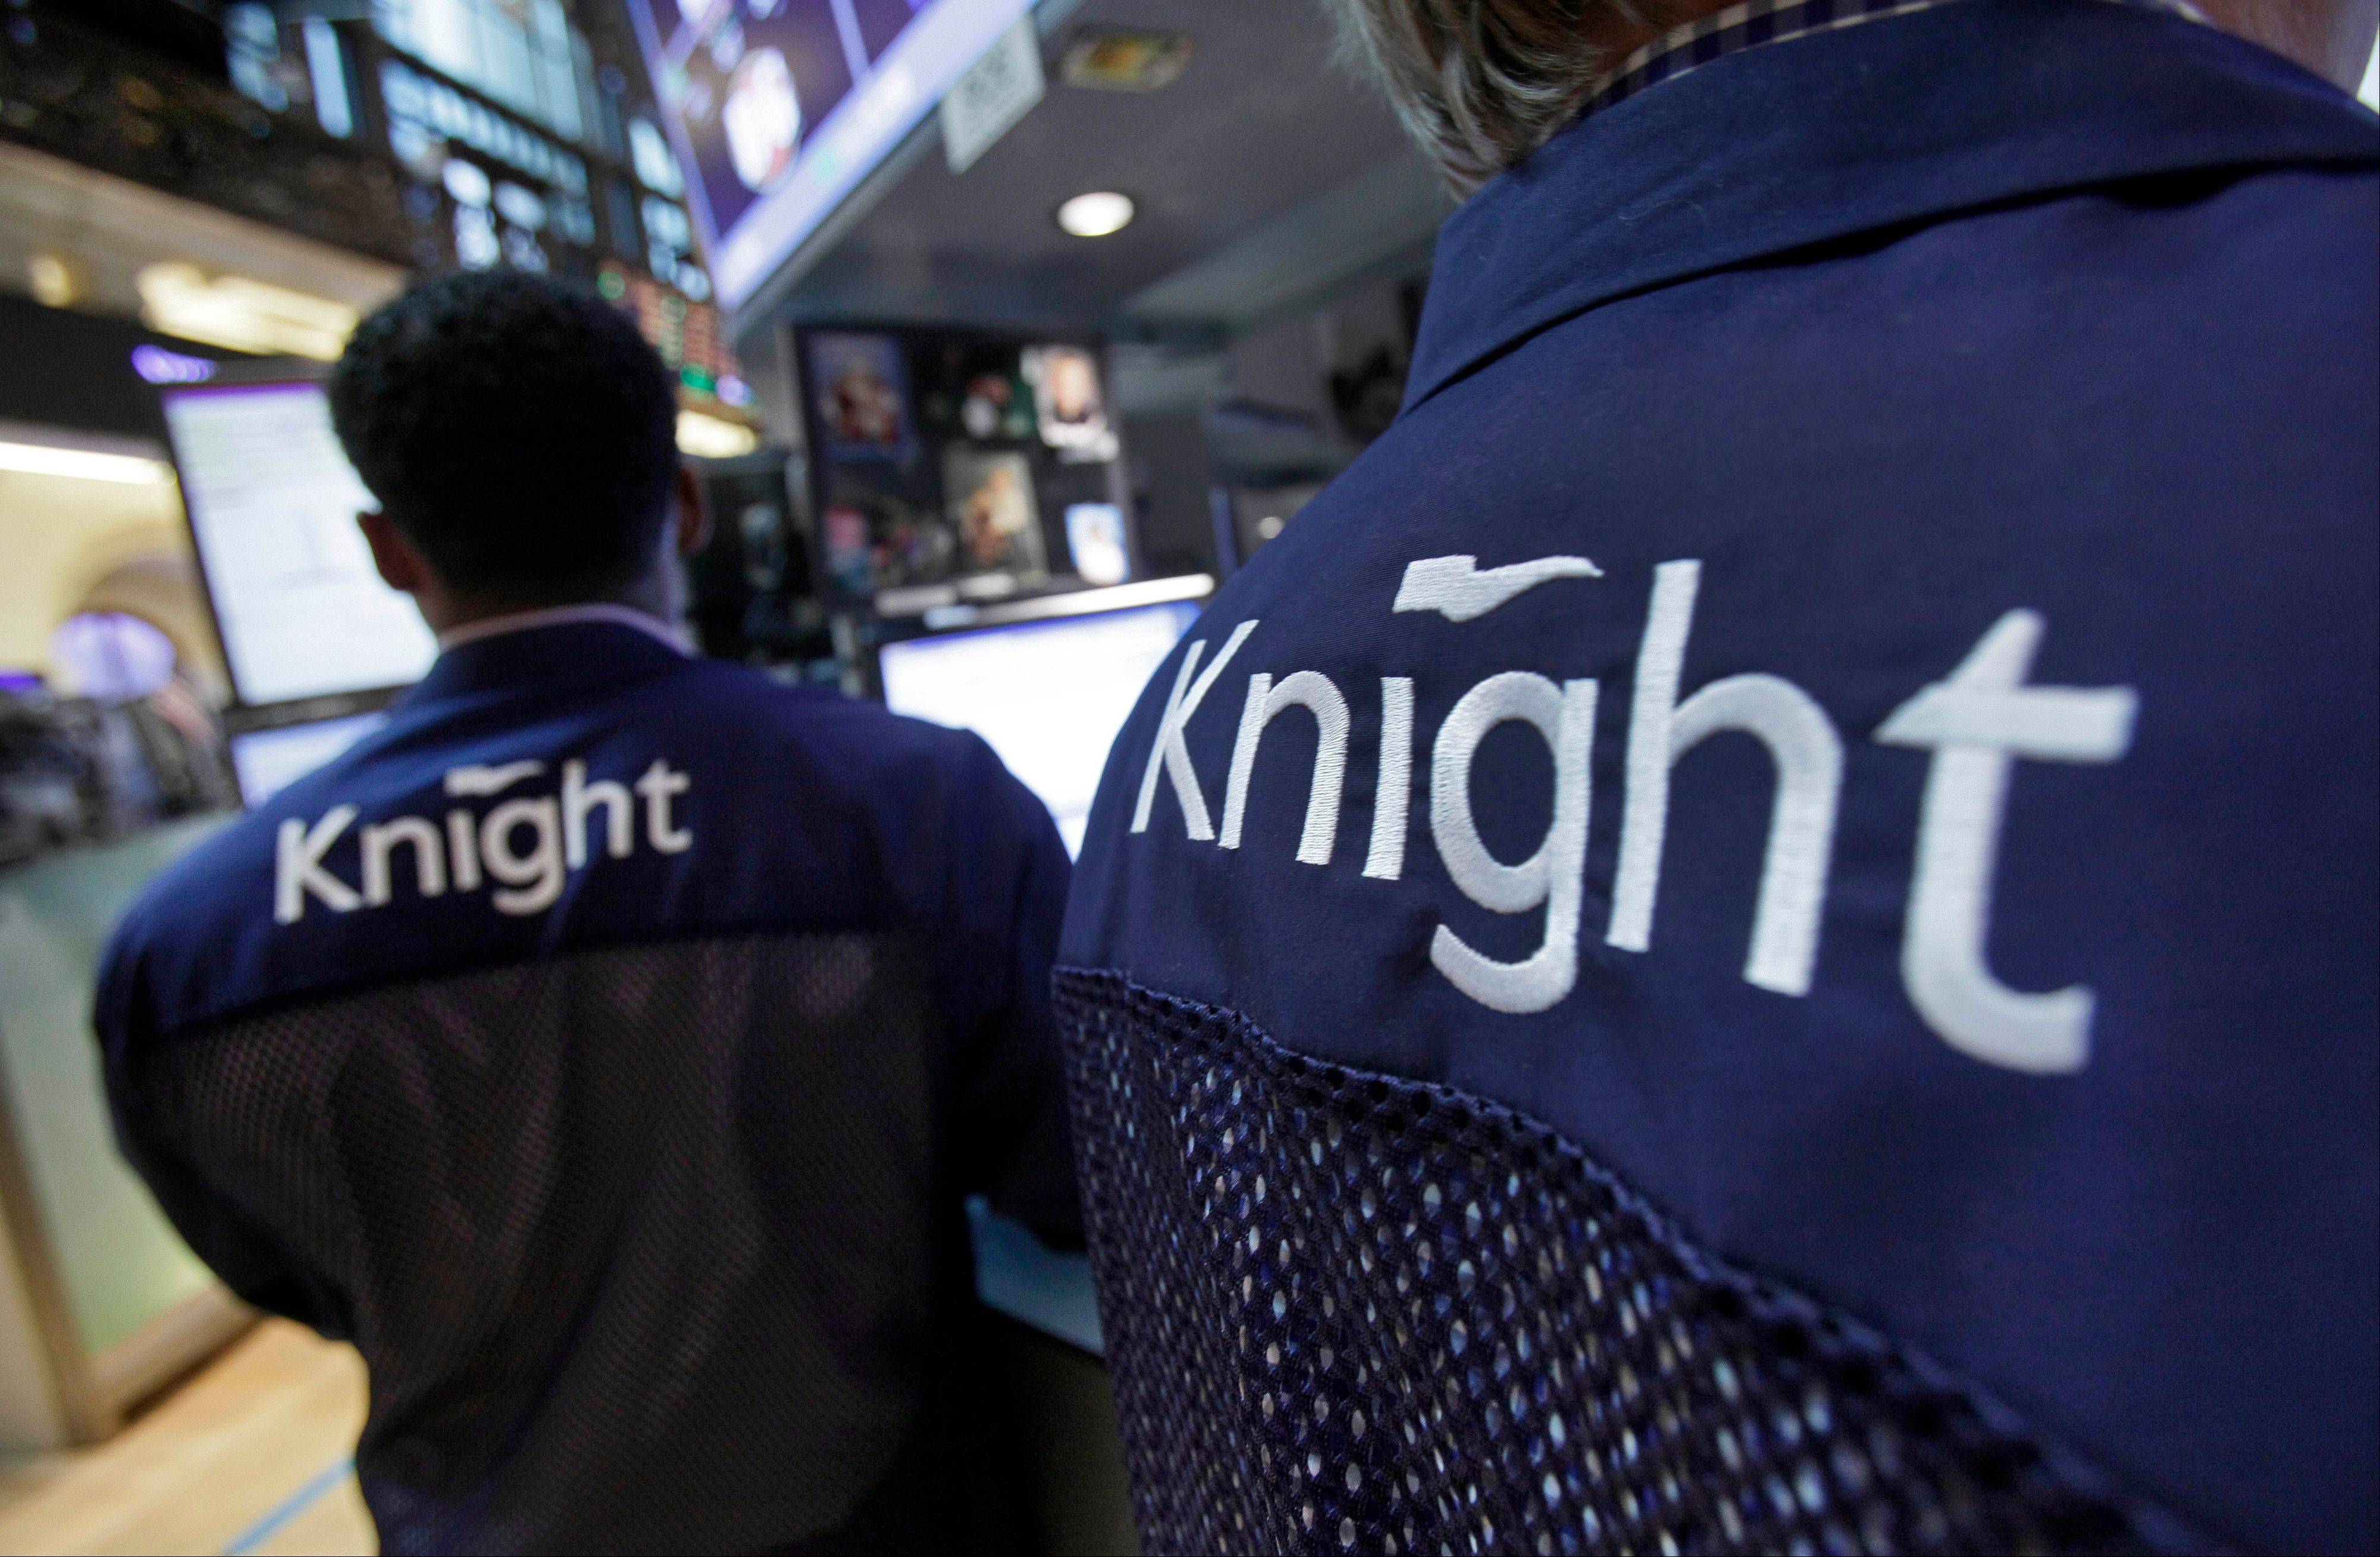 Knight Capital specialists work at their posts on the floor of the New York Stock Exchange. Knight Capital announced Monday that investors have agreed to supply it with $400 million in financing, which would help the trading firm stay in business after last week's disastrous software glitch that shook U.S. stock trading and jeopardized its future.